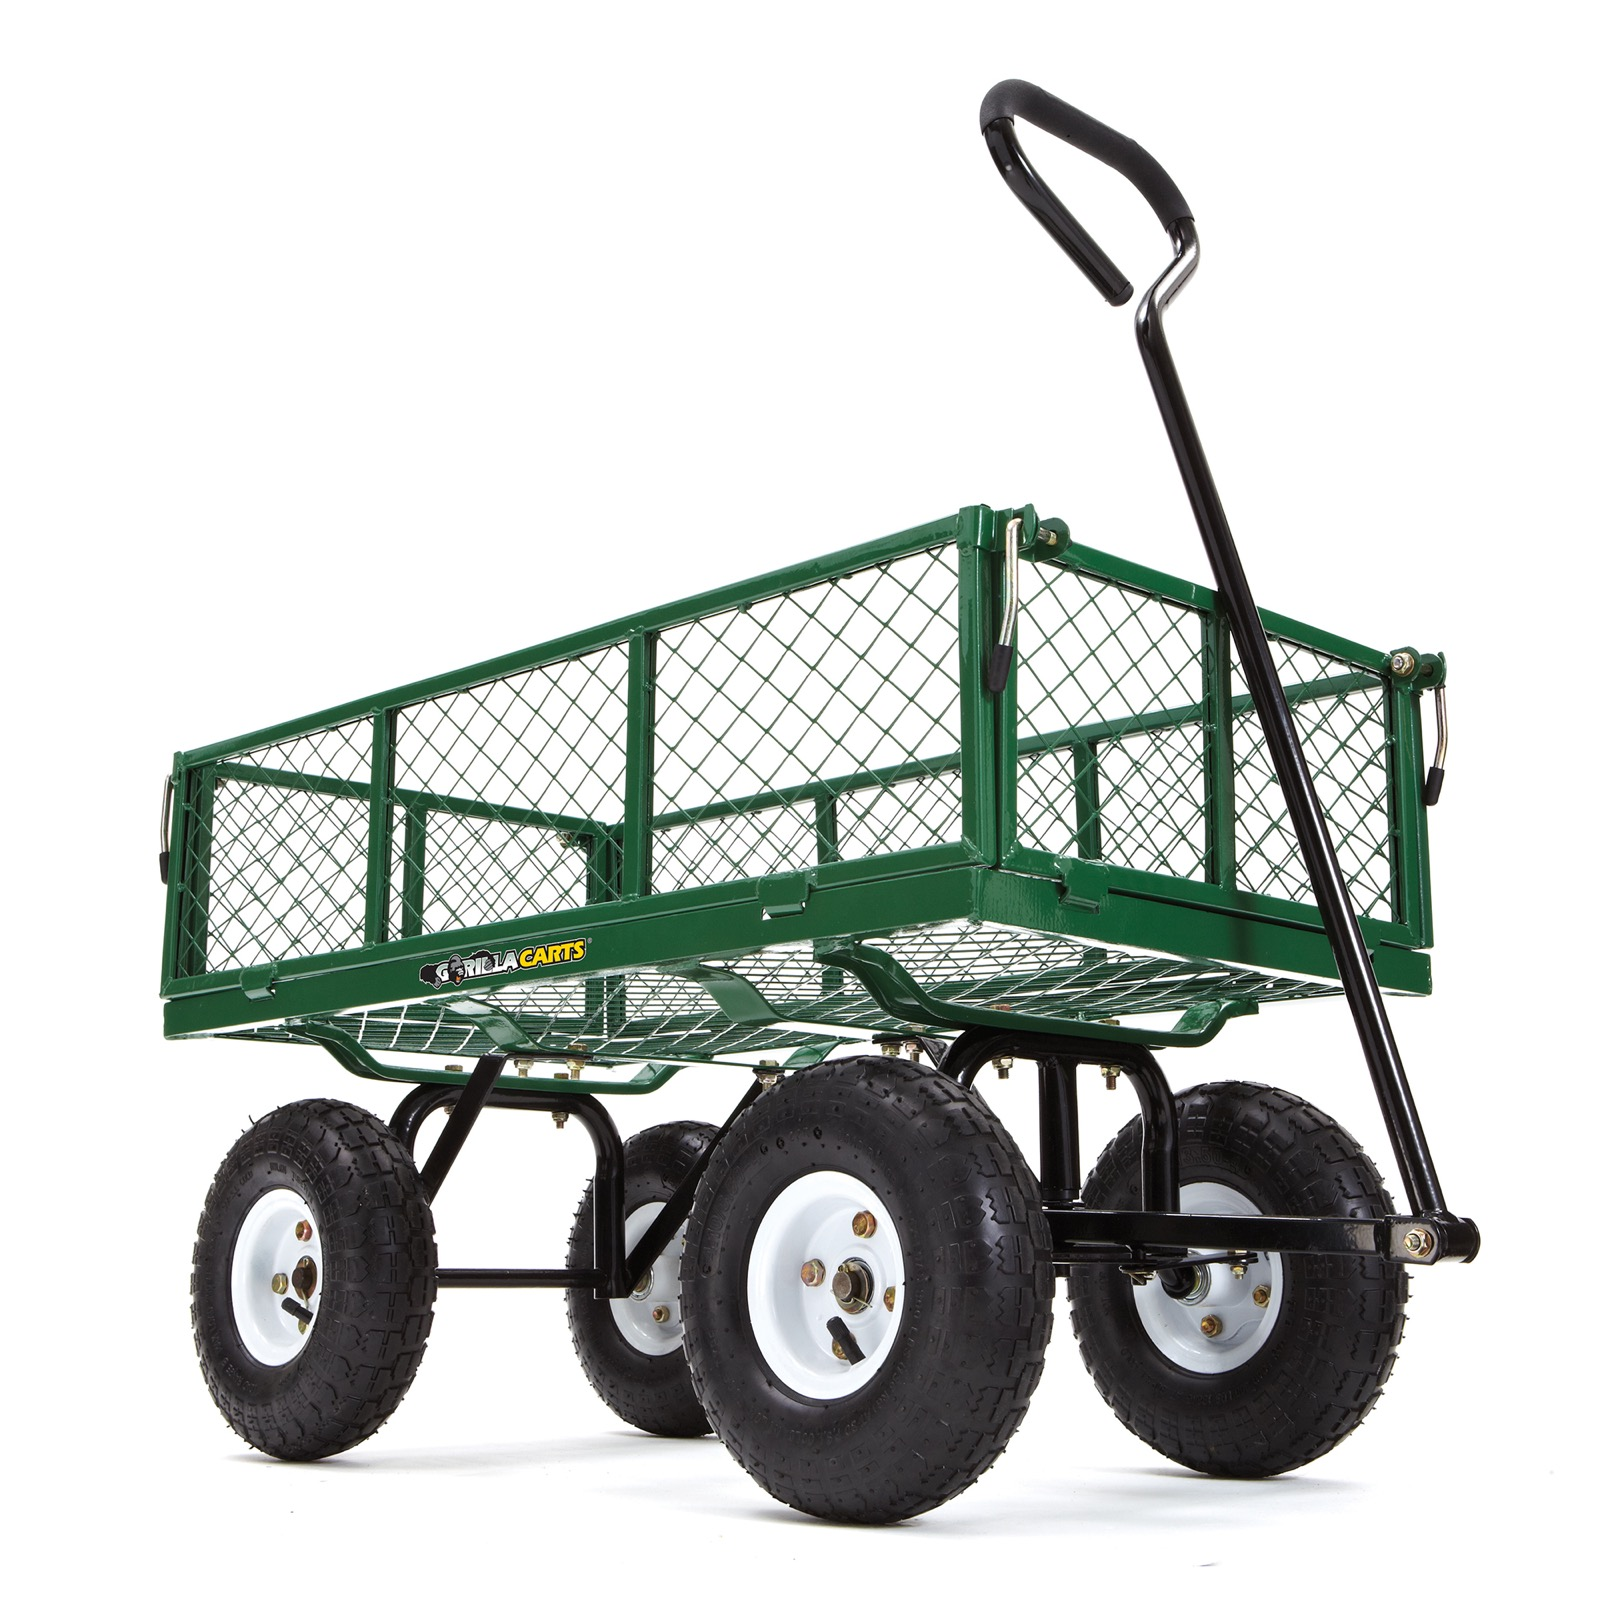 Gorilla Carts Green Steel Lawn Cart